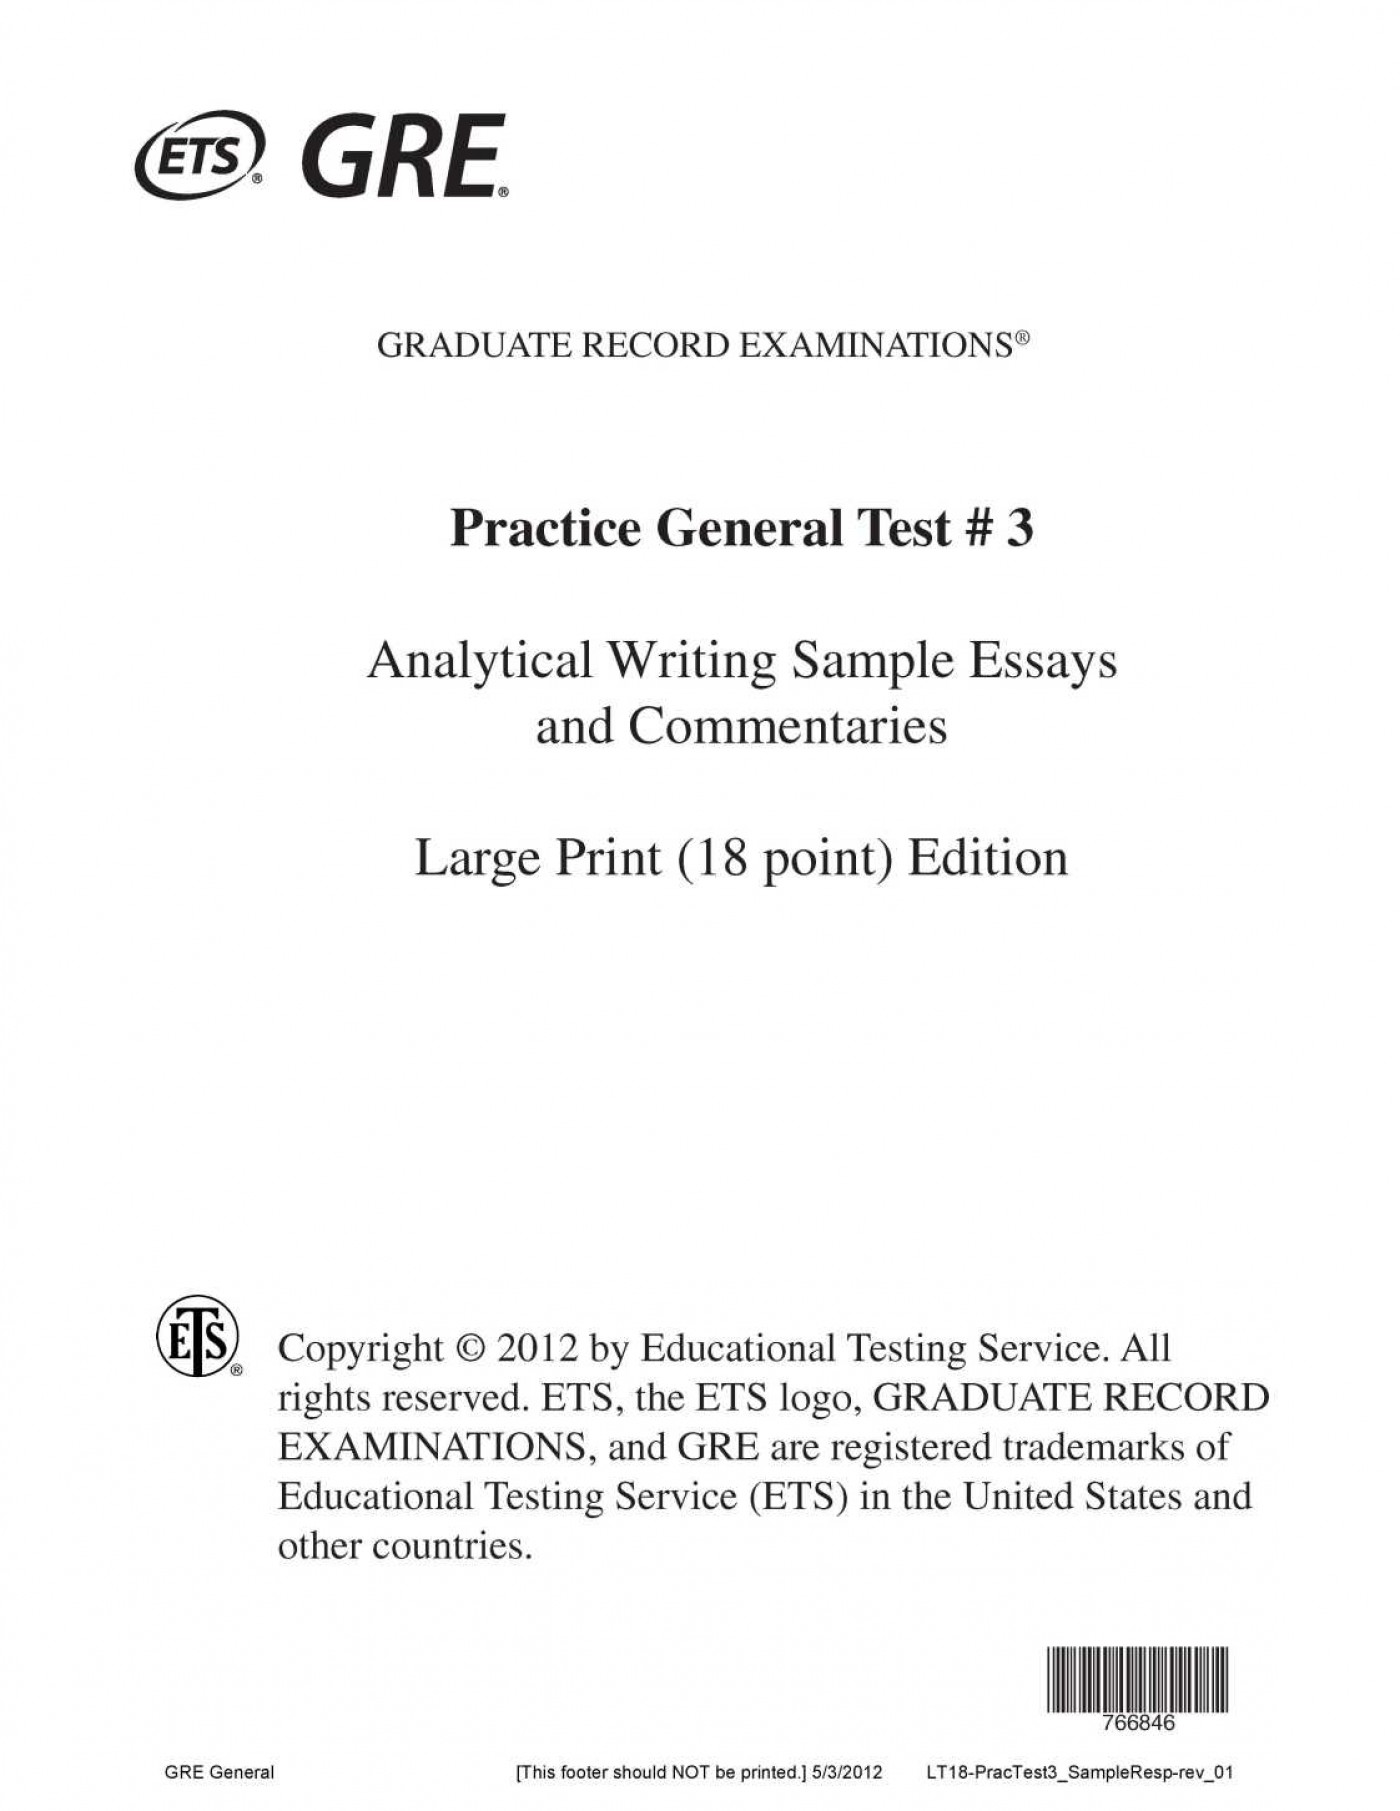 006 Toefl Sample Essay Culture Essays Gre Awas Analytical Writ Issue To Use Good Score Topic Ets Pdf Writing Remarkable Topics Grader Pool Solutions 1400